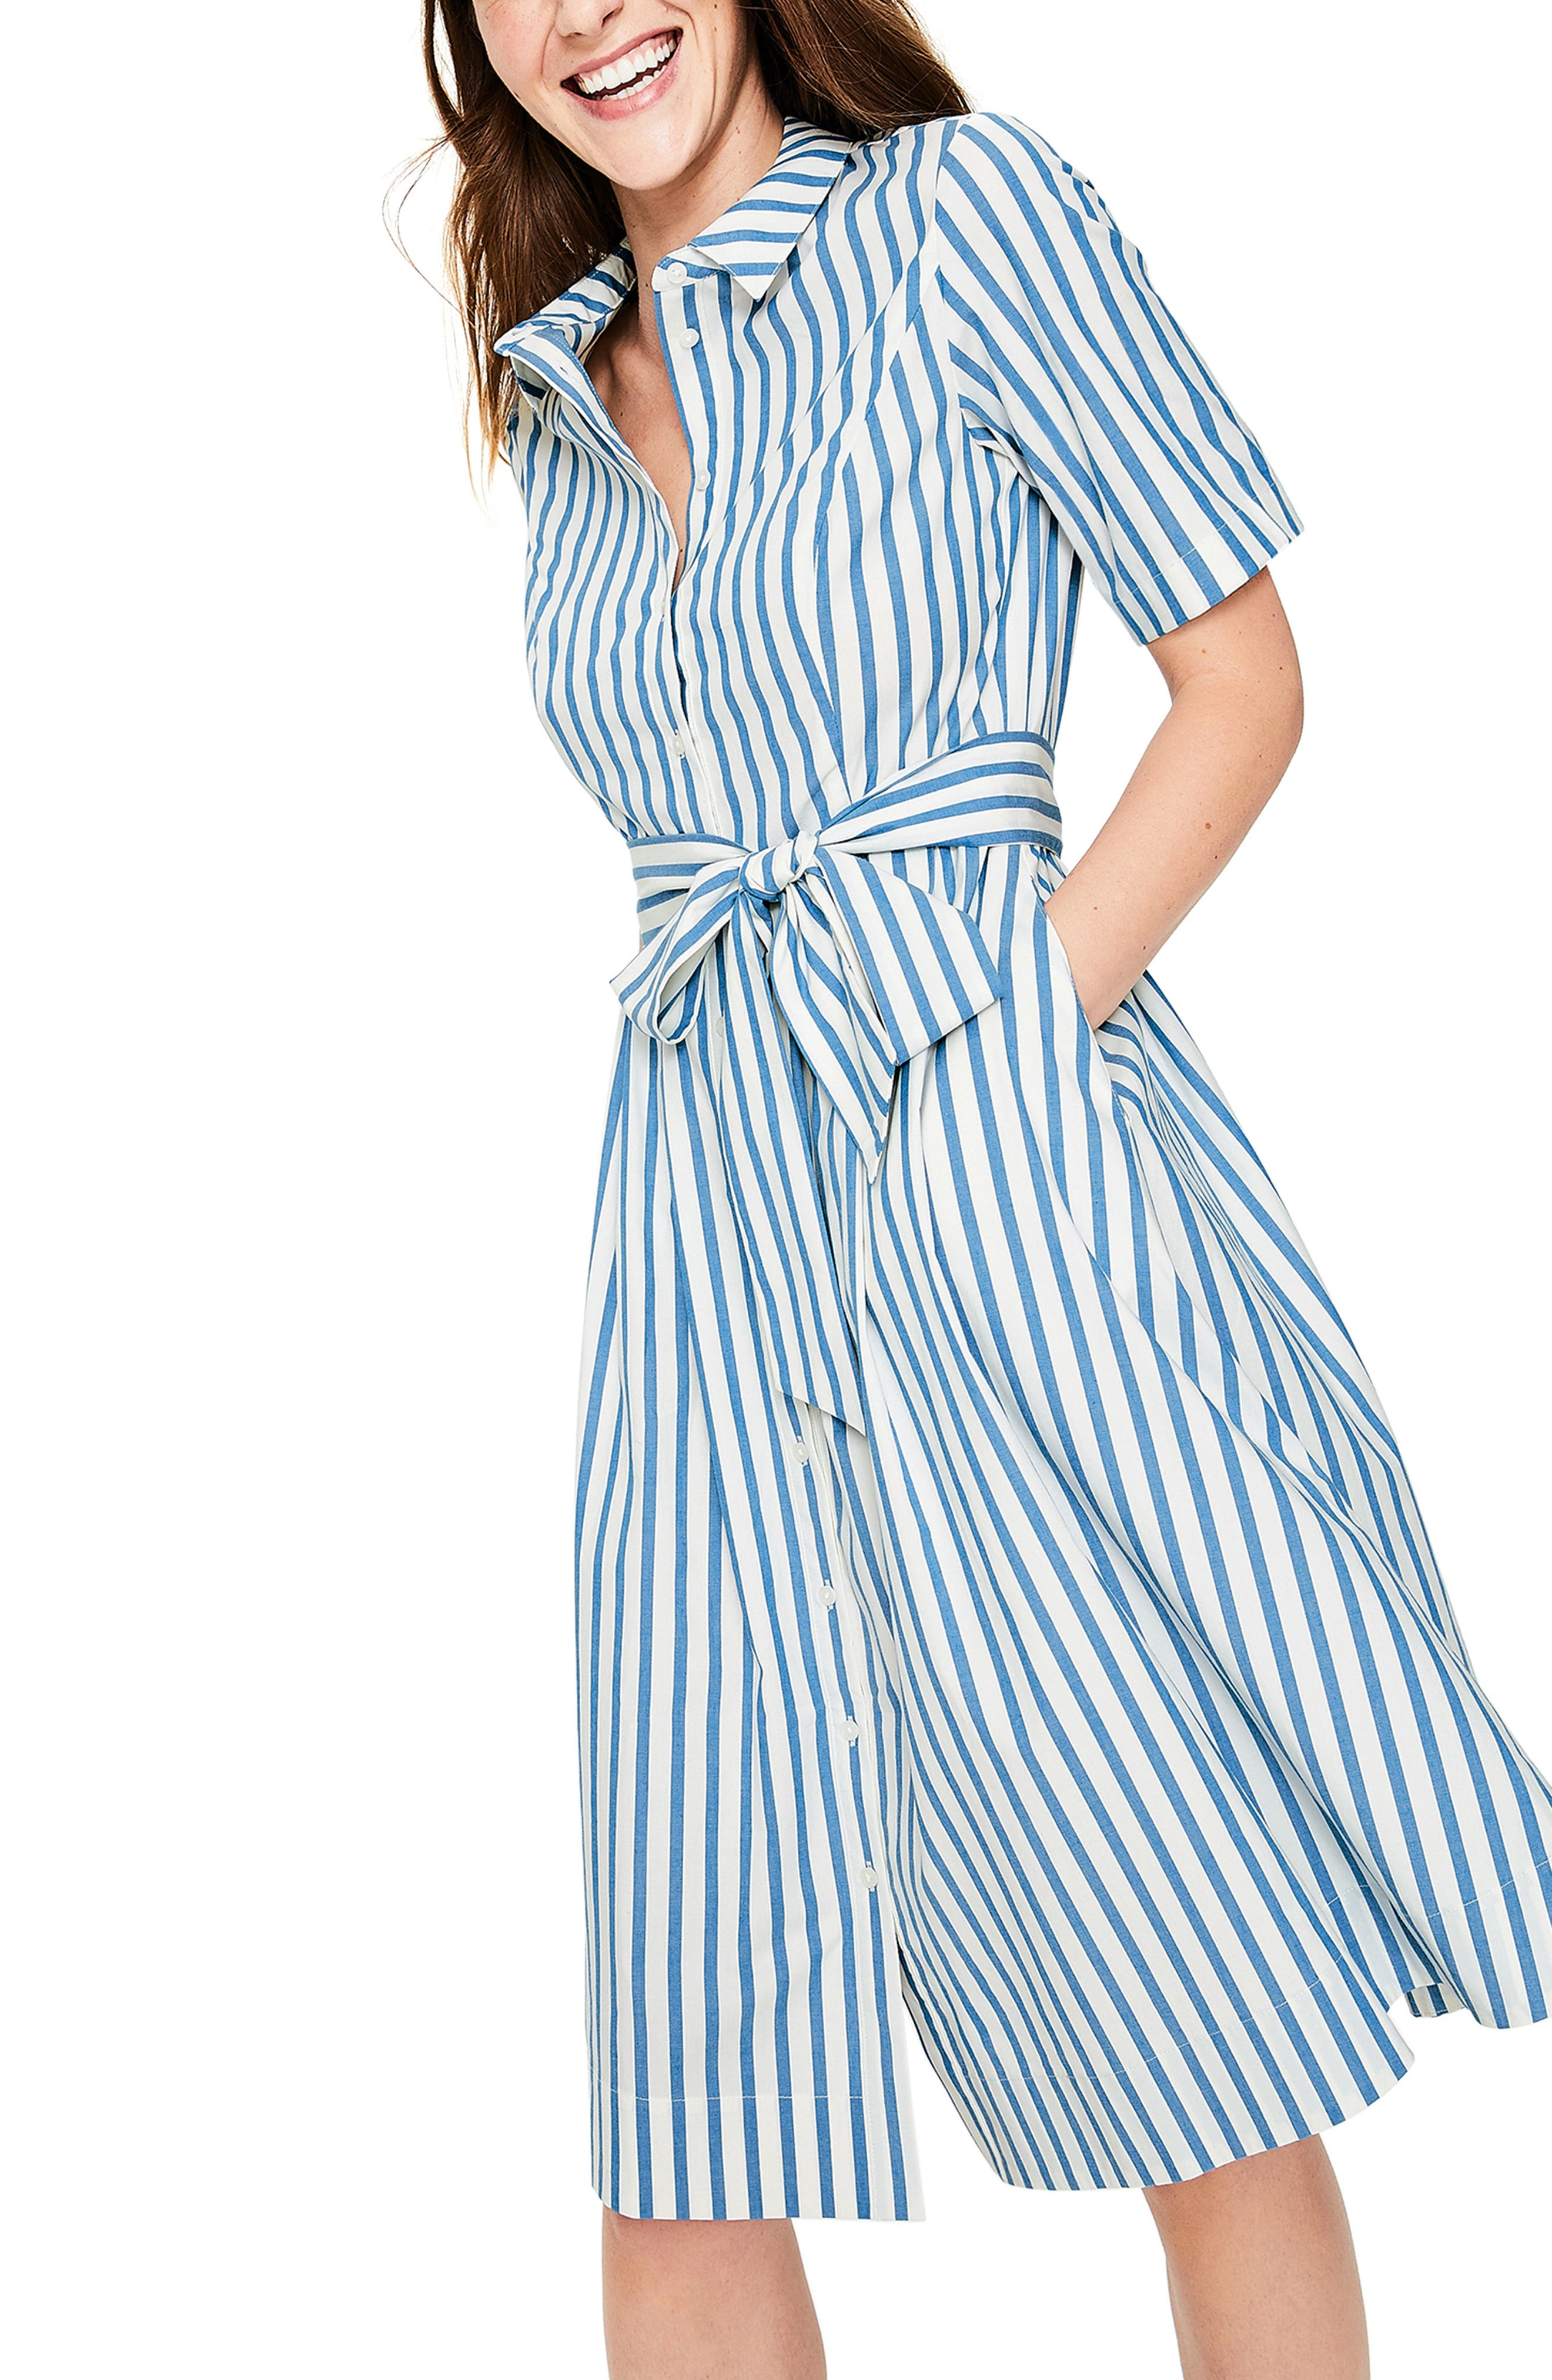 Anastasia Tie Front Shirtdress,                             Main thumbnail 1, color,                             IVORY AND CYAN STRIPE